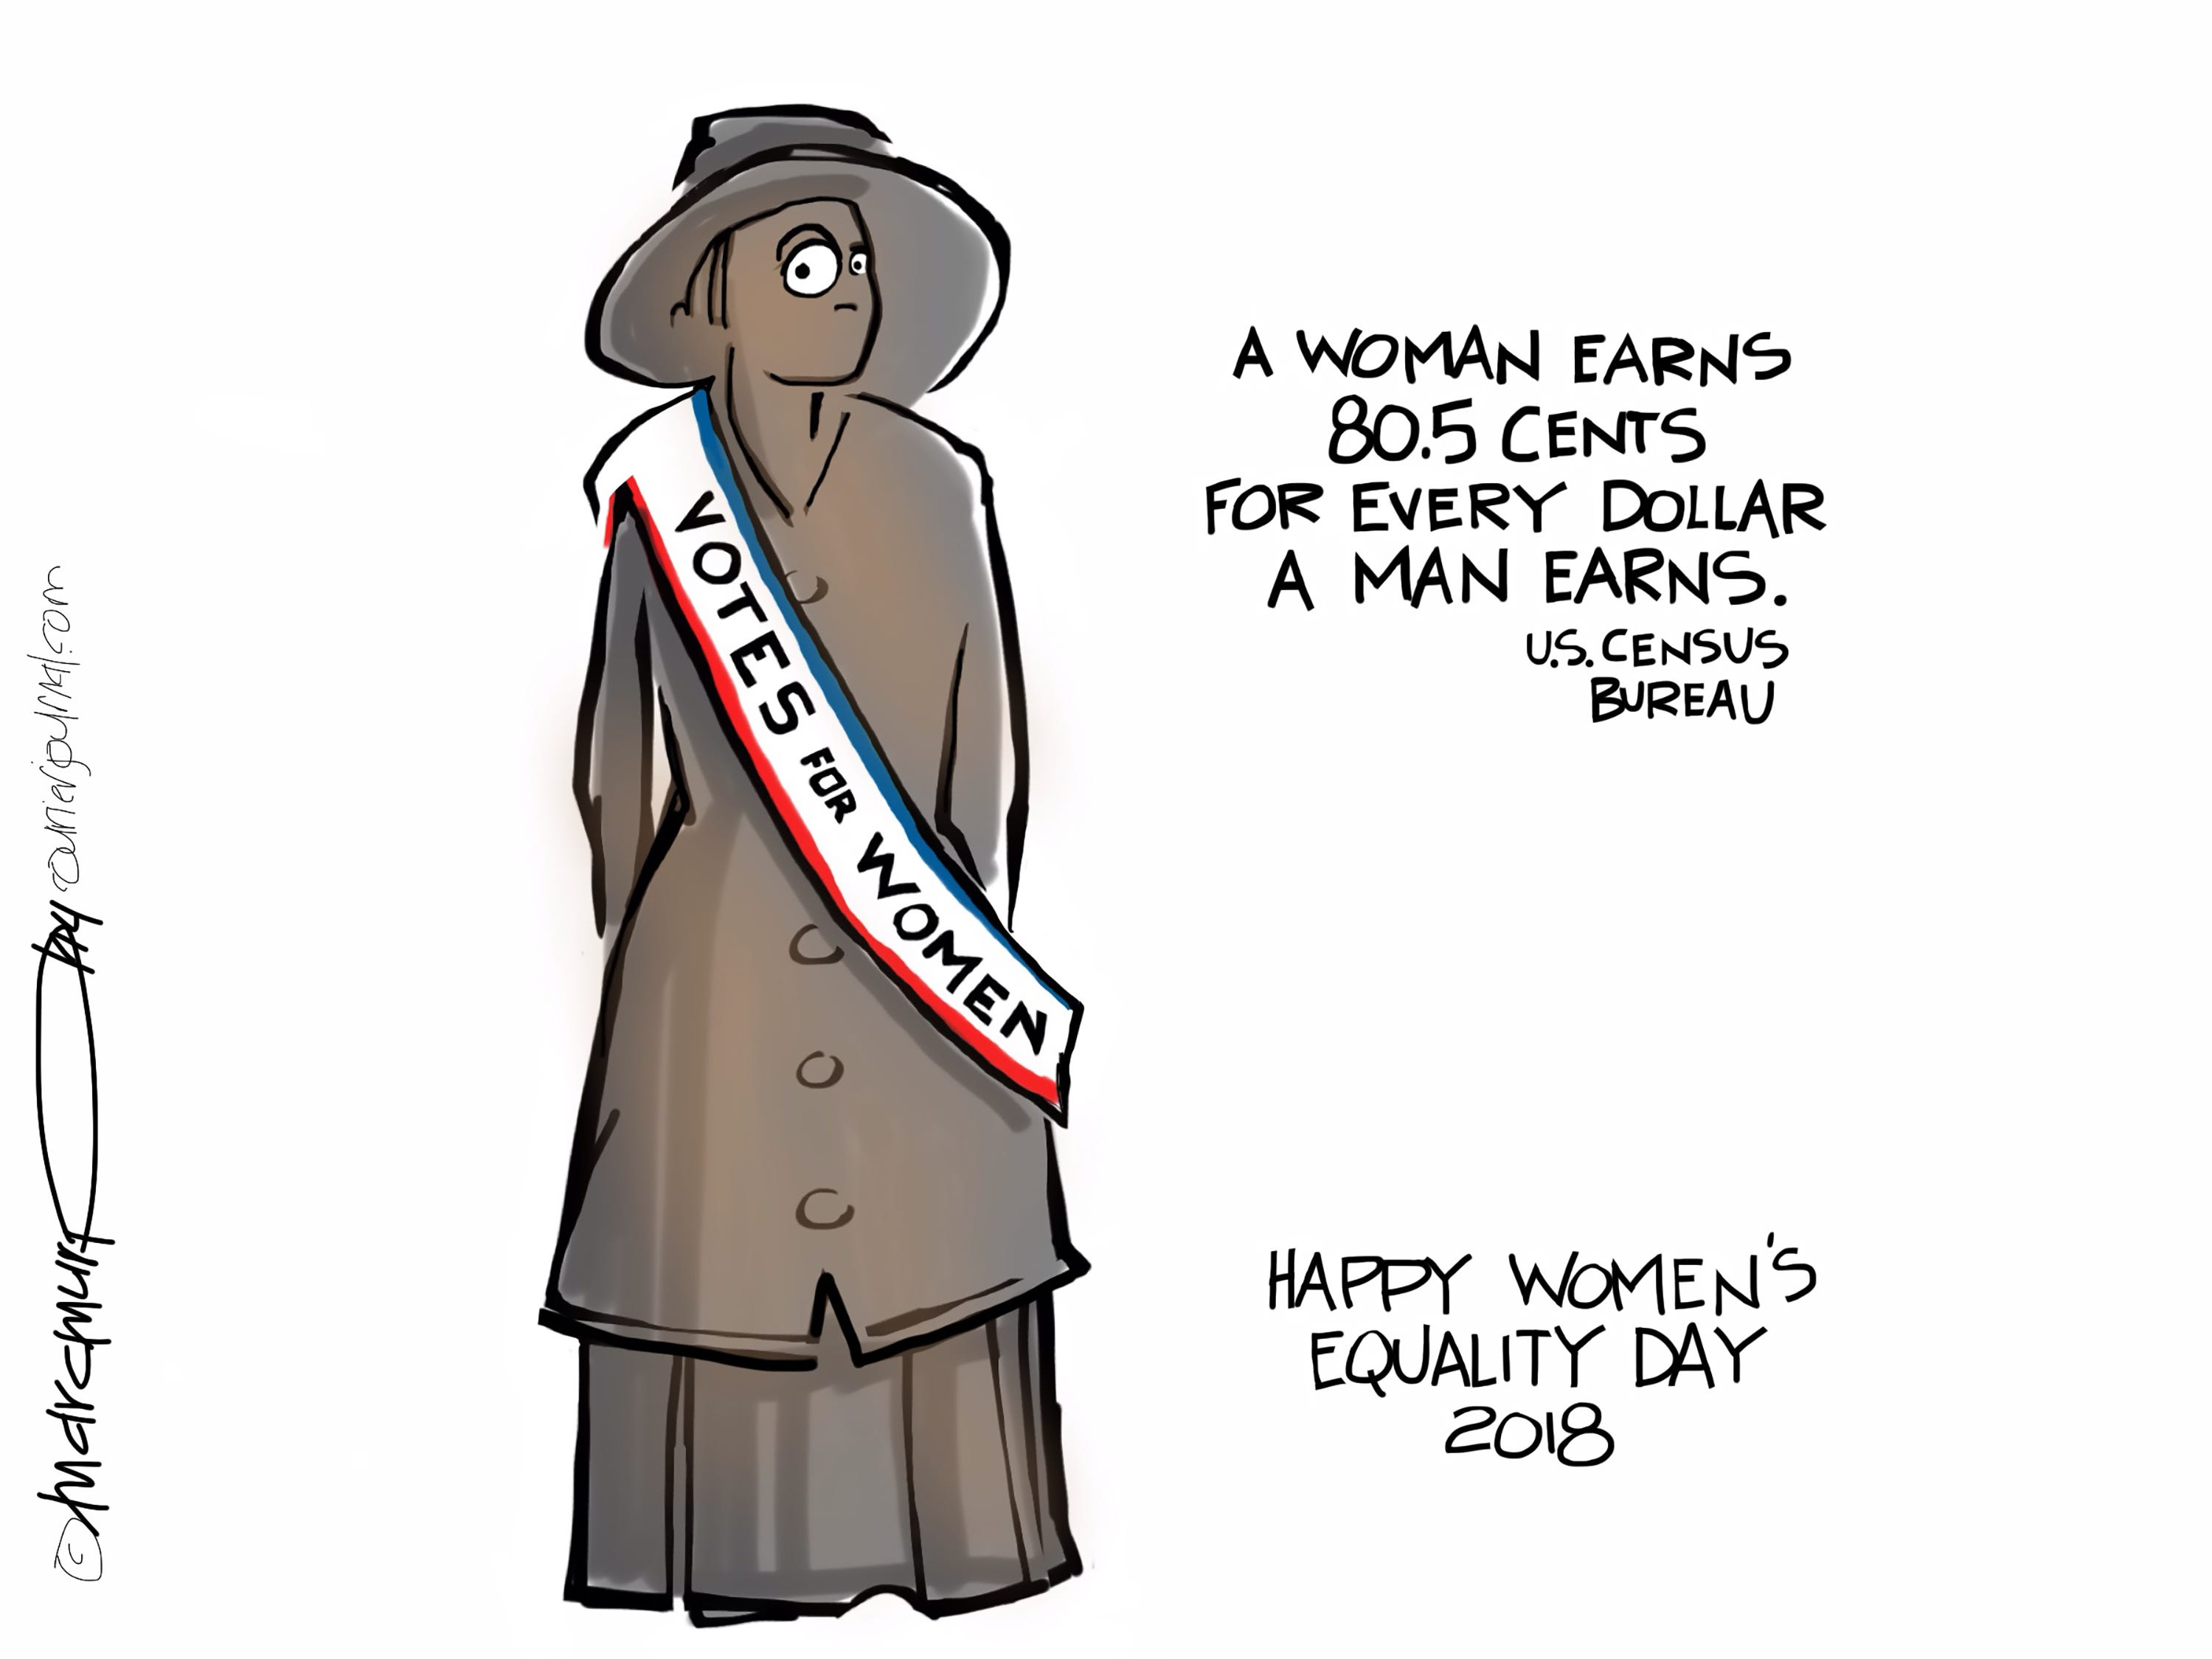 Woman's Equality Day, which commemorates the right to vote, was Aug. 26. The cartoonist's homepage, courier-journal.com/opinion